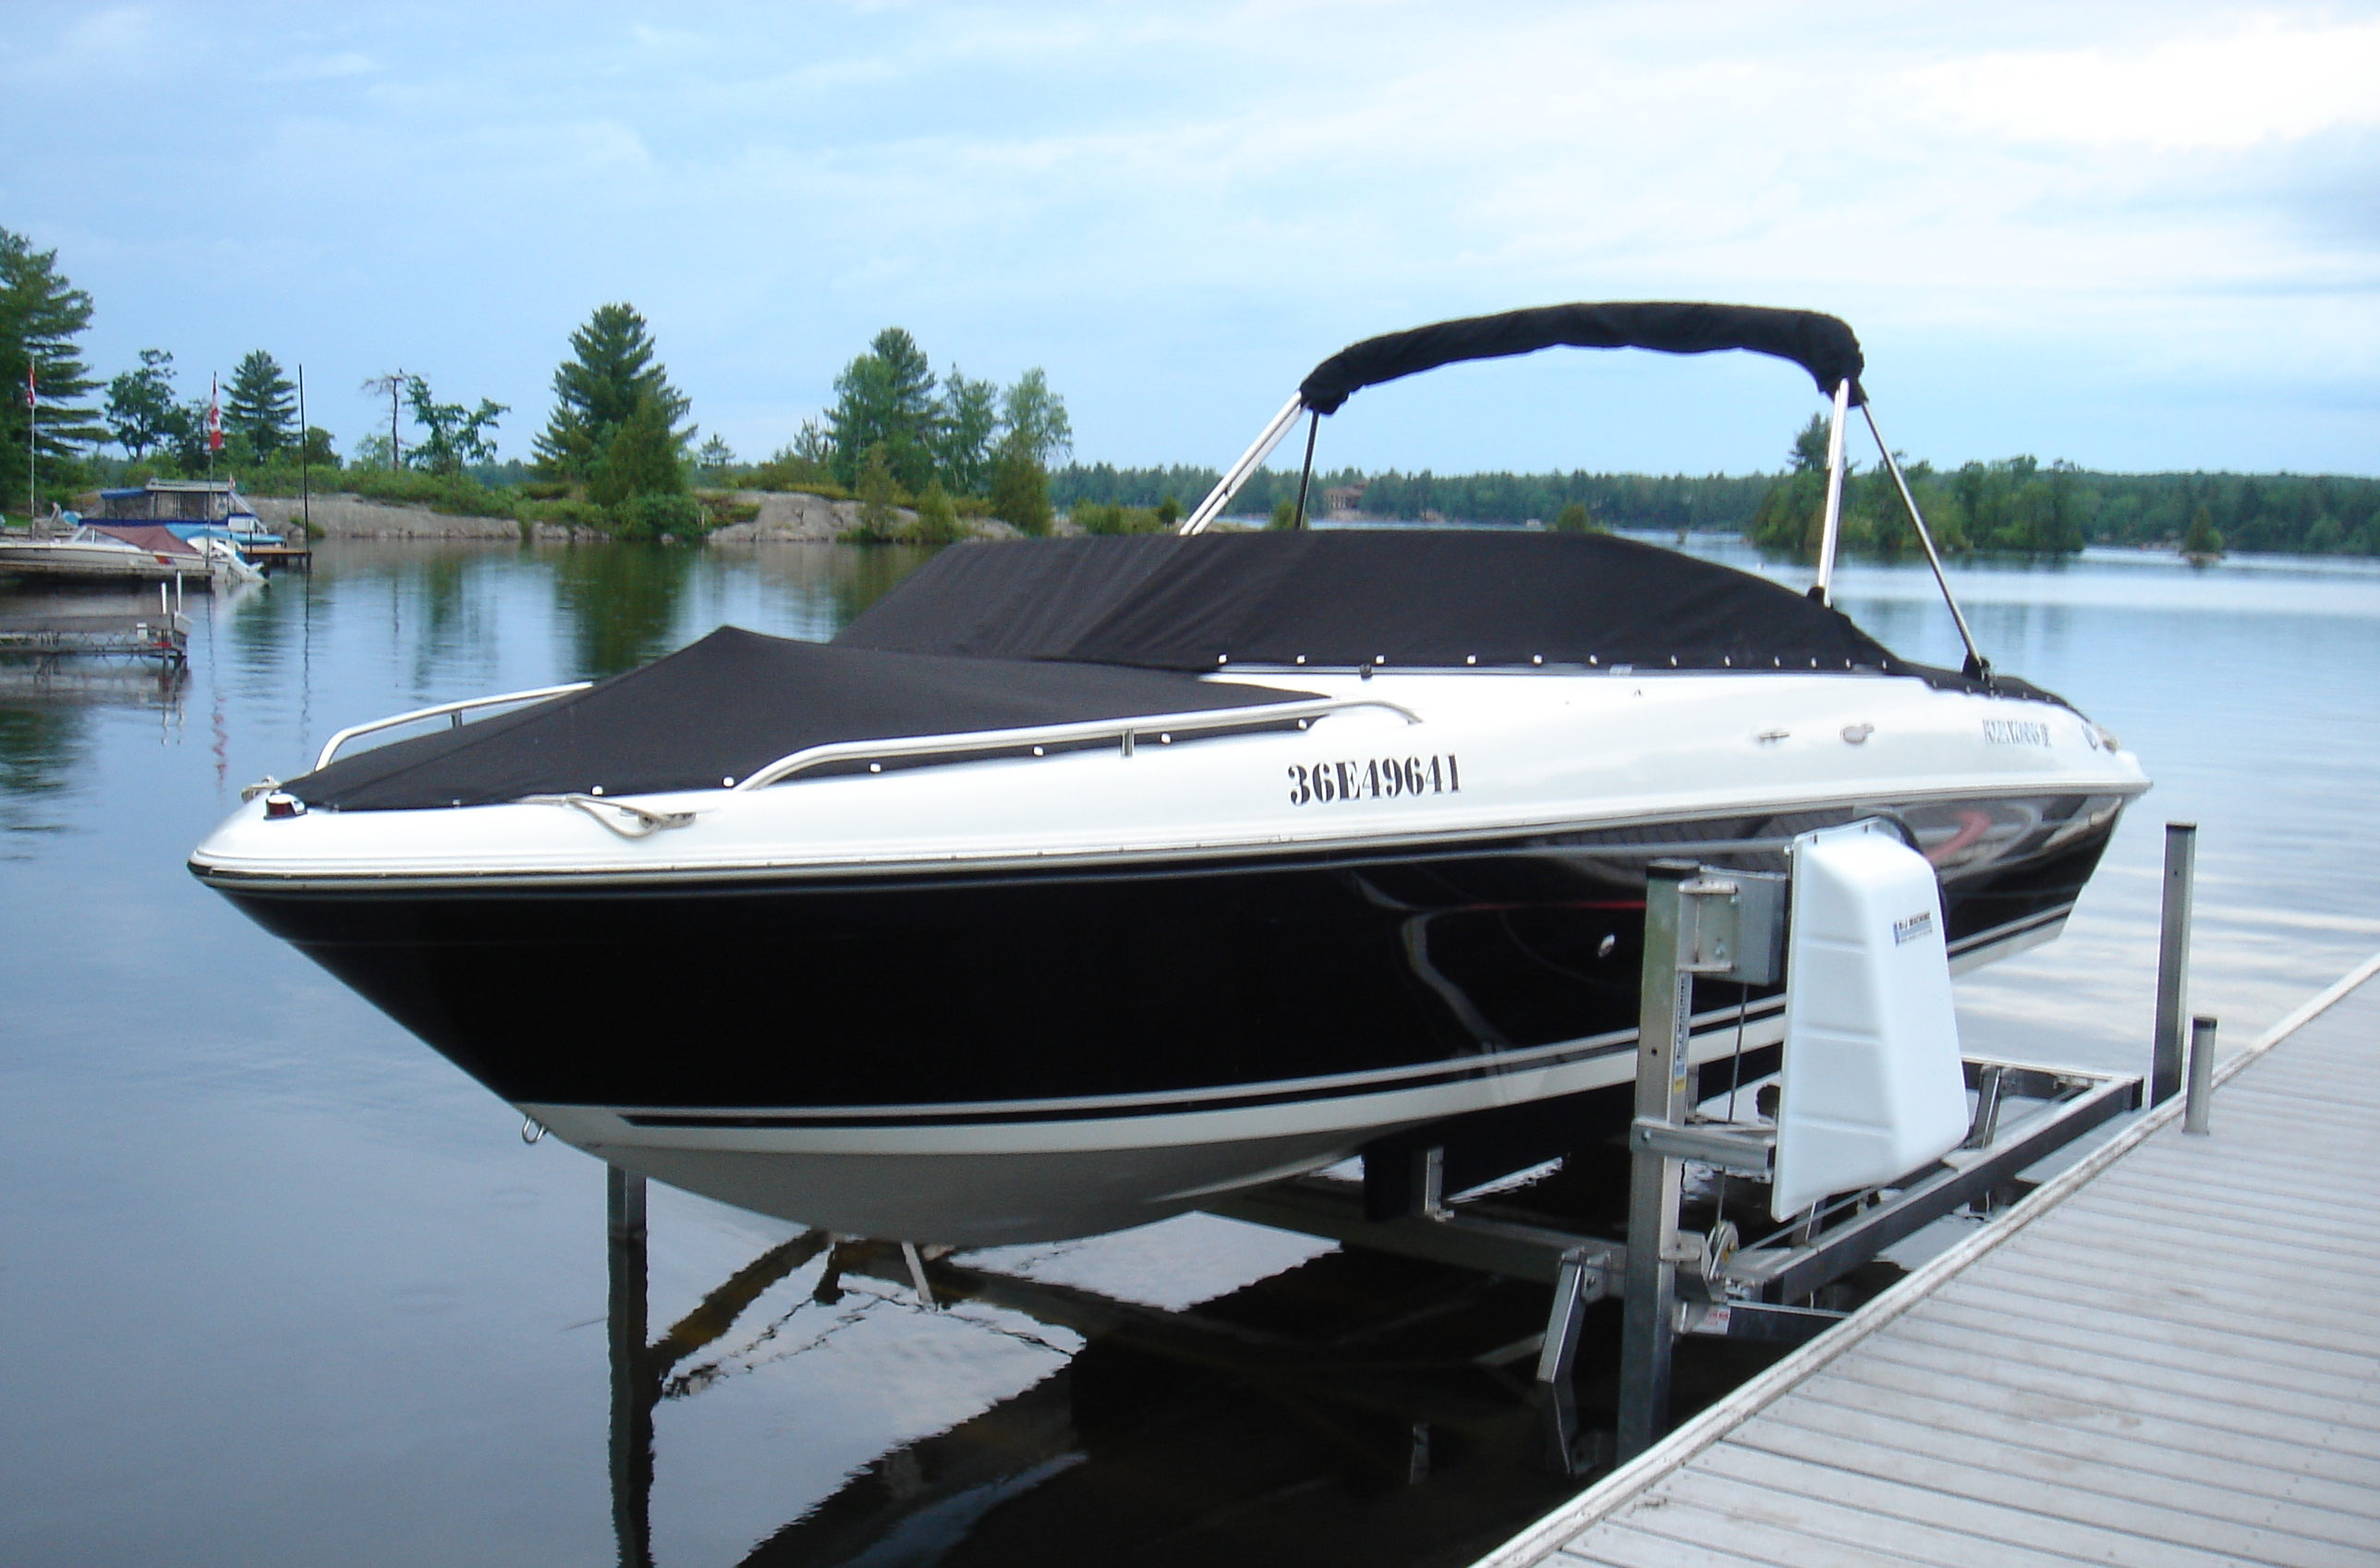 remote control jet boat with Cantilever Boat Lifts on Cantilever Boat Lifts additionally A0 51 91 01200000012881120791918977914 as well Watch in addition Attachment in addition Superboat Looks Like Dolphin Whale Shark.